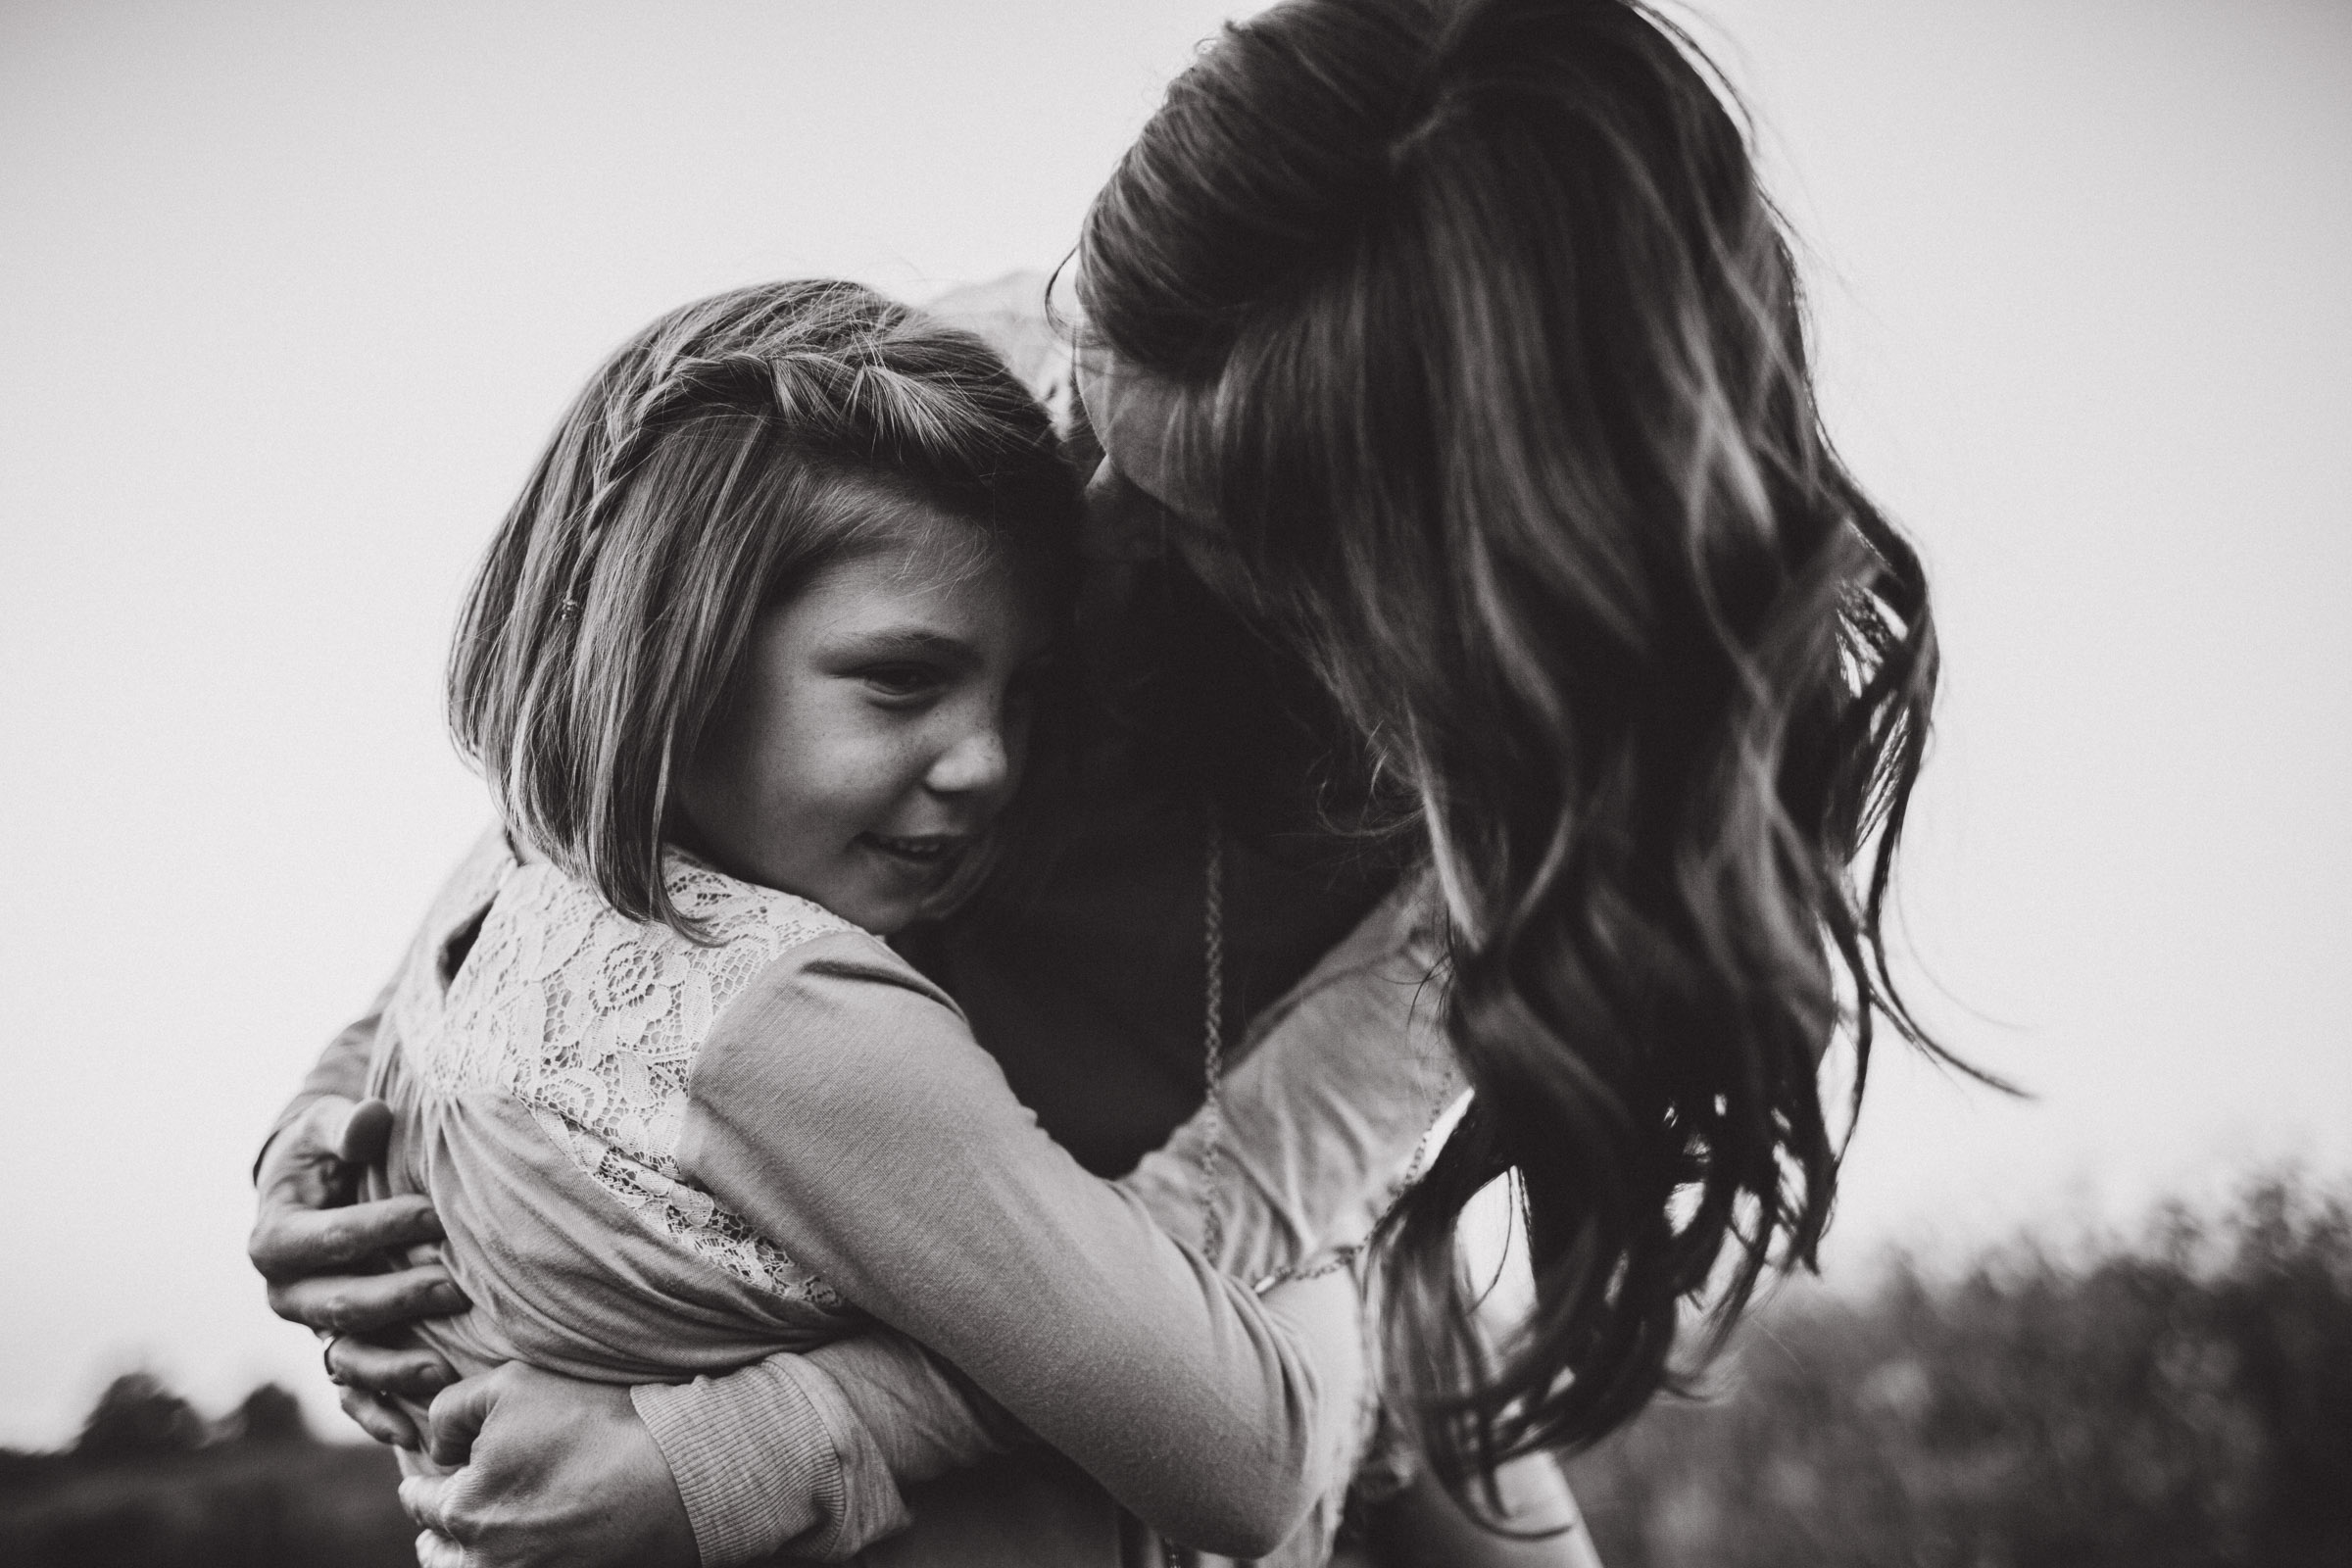 mother tenderly hugging her daughter, black and white portrait